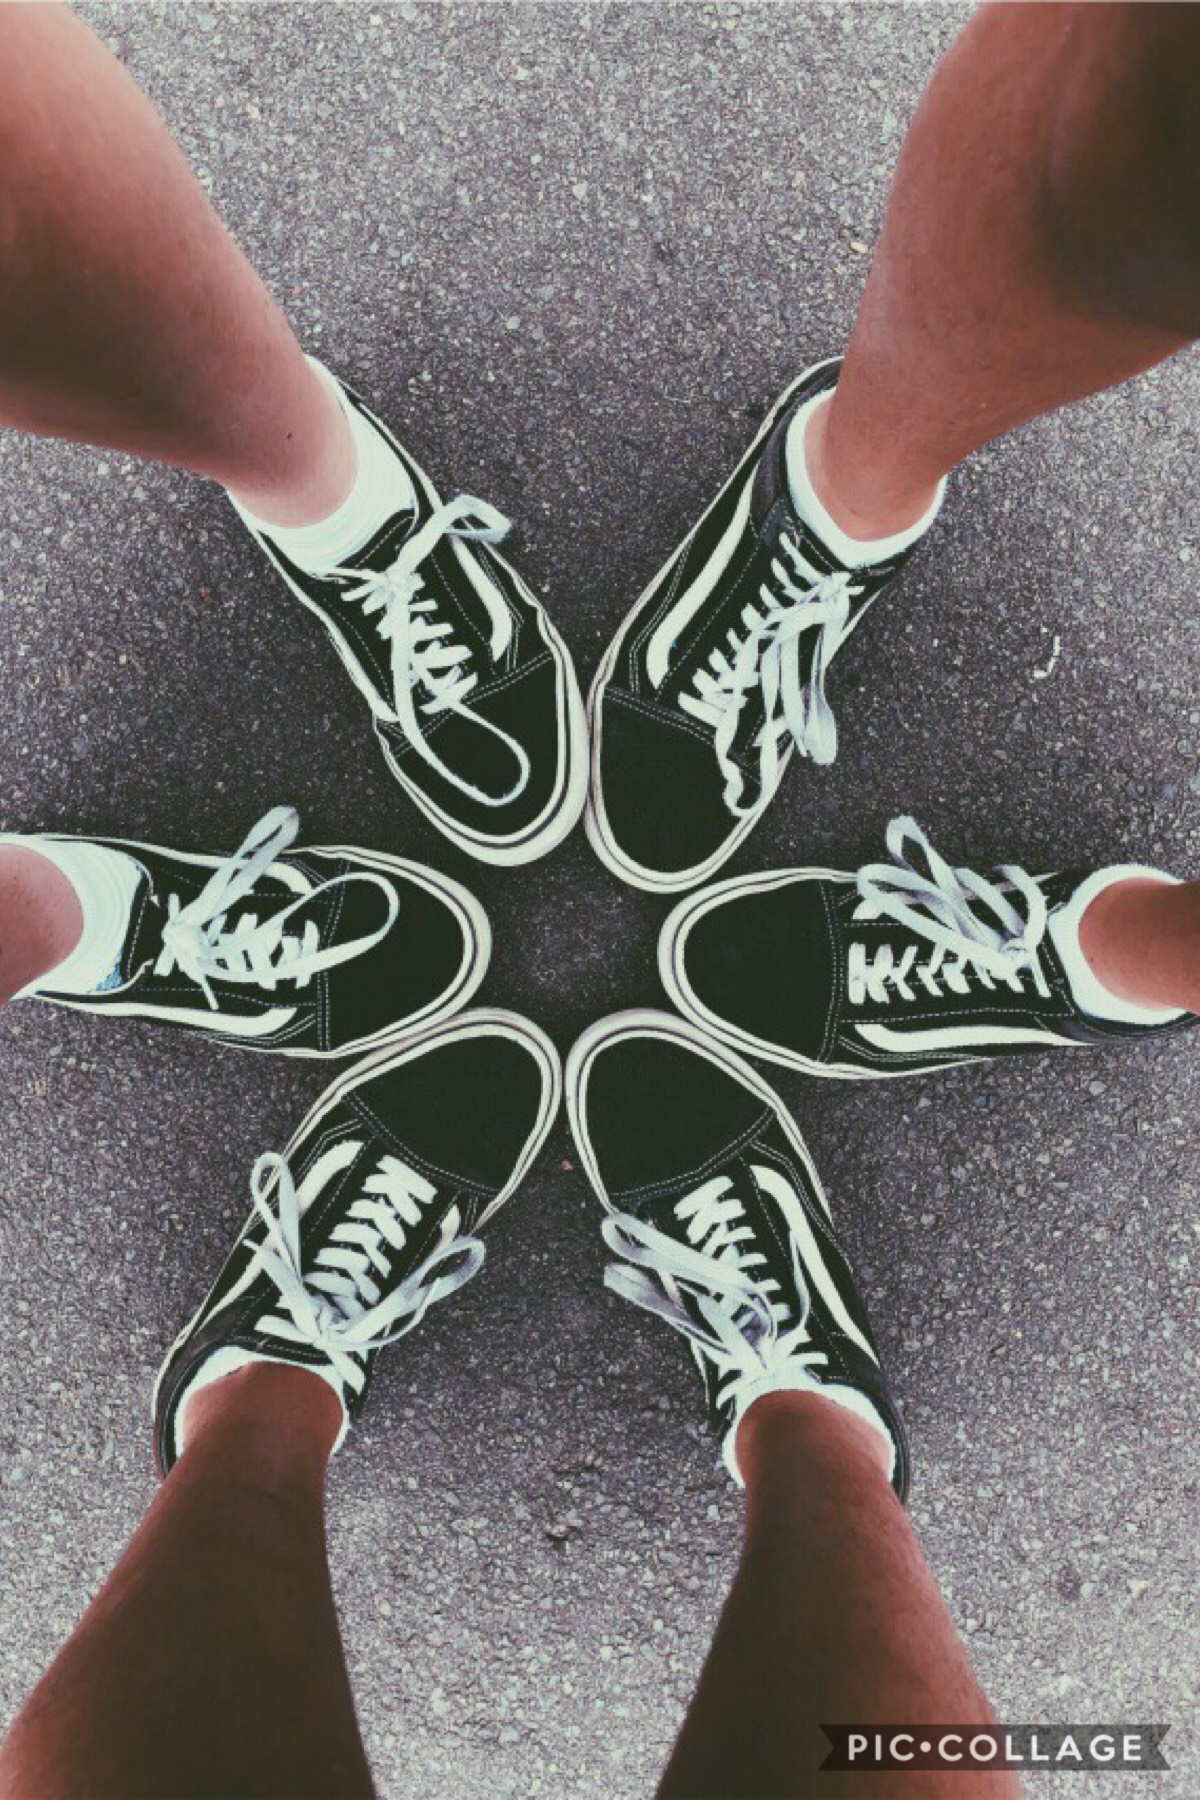 Picture #2! This wasn't taken by me, but one of my best friends with our awesome shoeeess 😂 I'm the one closest to the top left corner :p and if you know who I am- please don't make it obvious! 😉😉😉